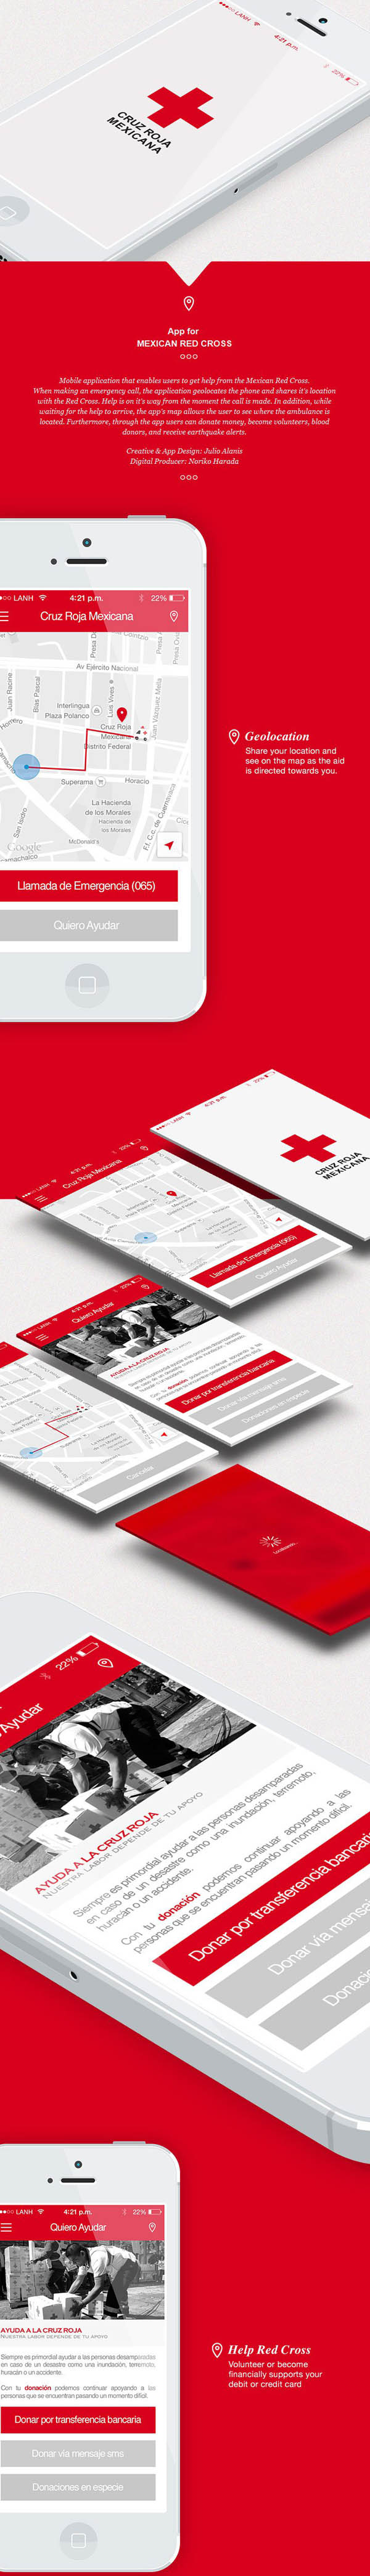 MEXICAN-RED-CROSS-APP